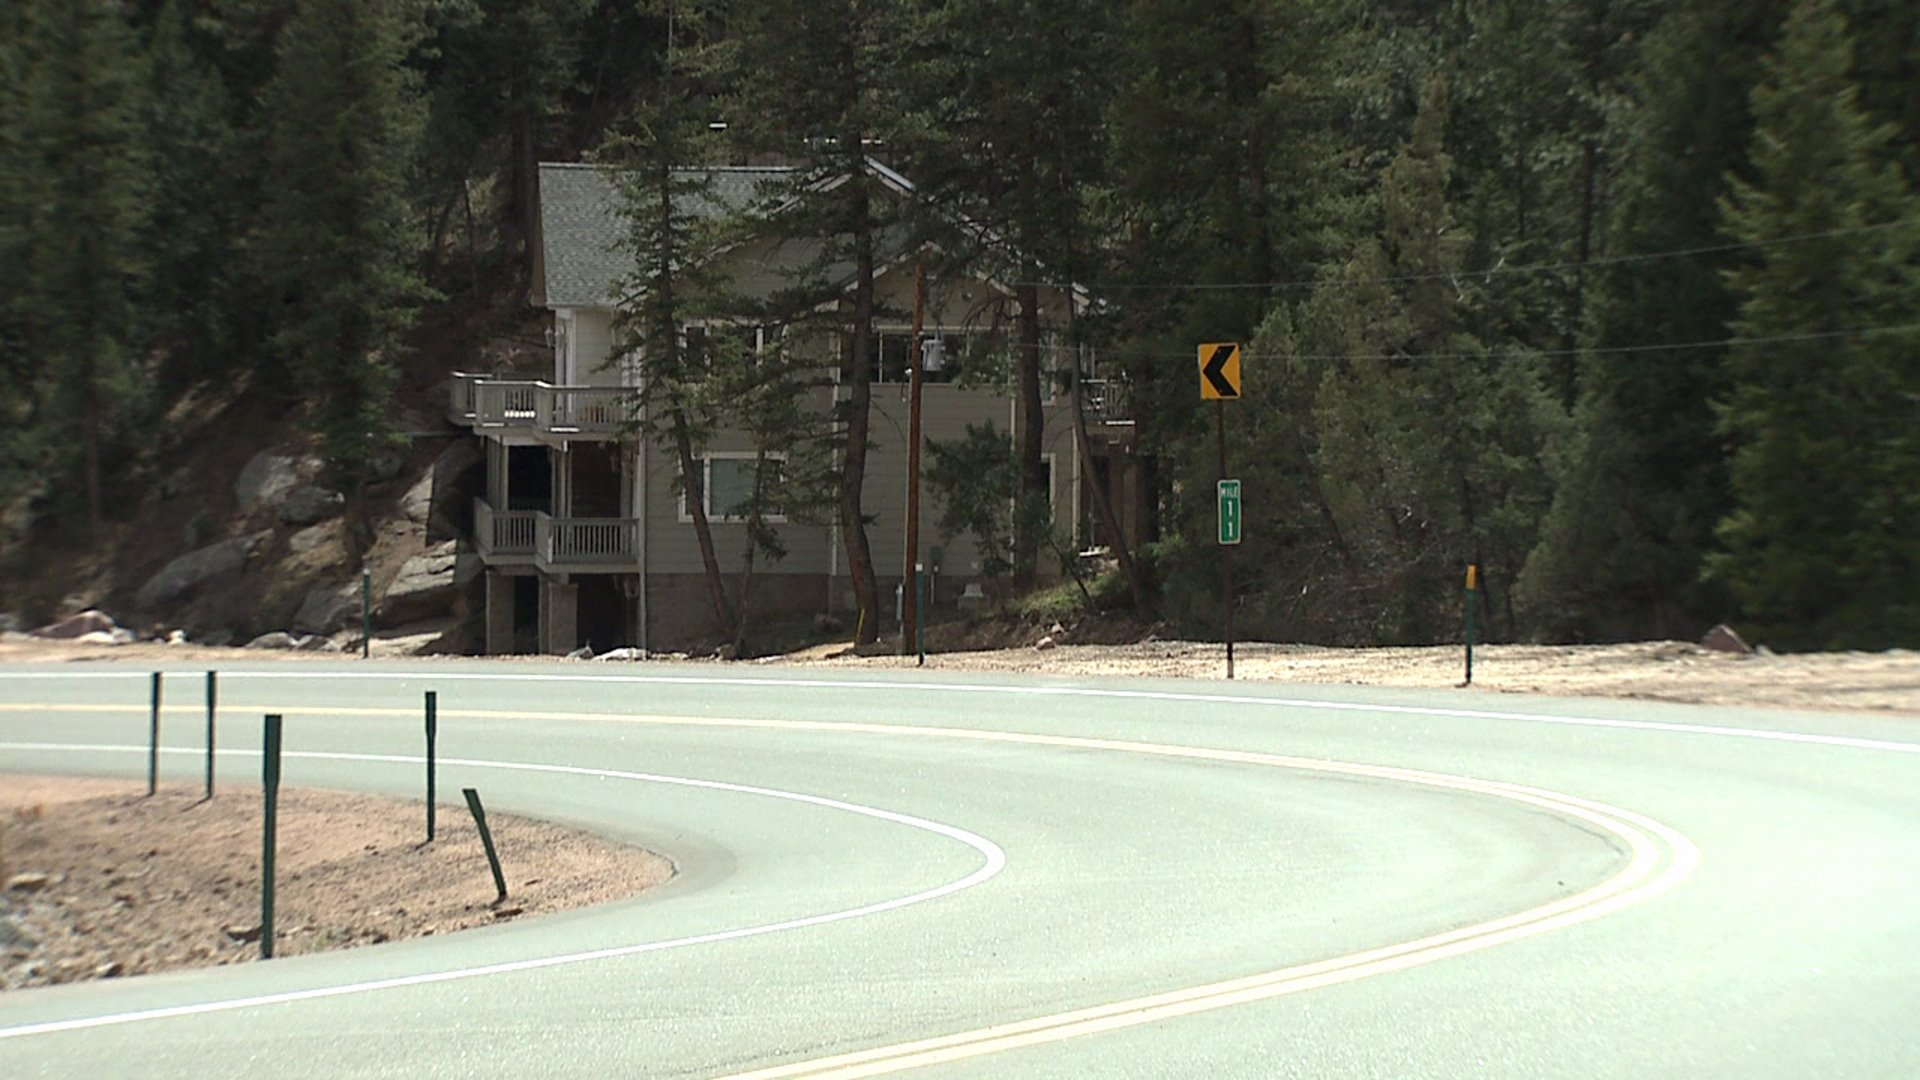 Home burglarized in Pinewood Springs, Colo